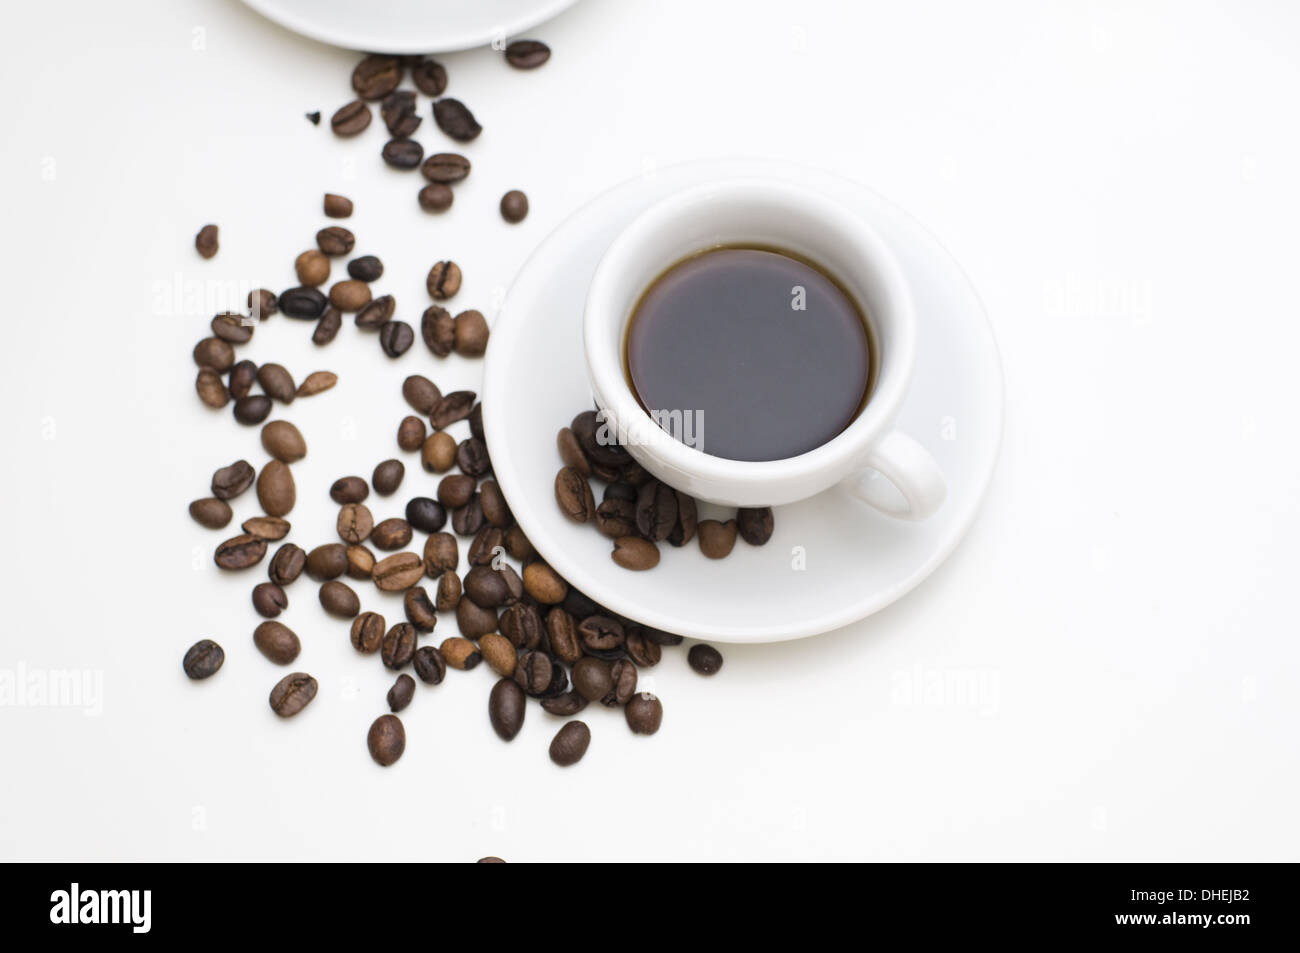 coffee and more - Stock Image